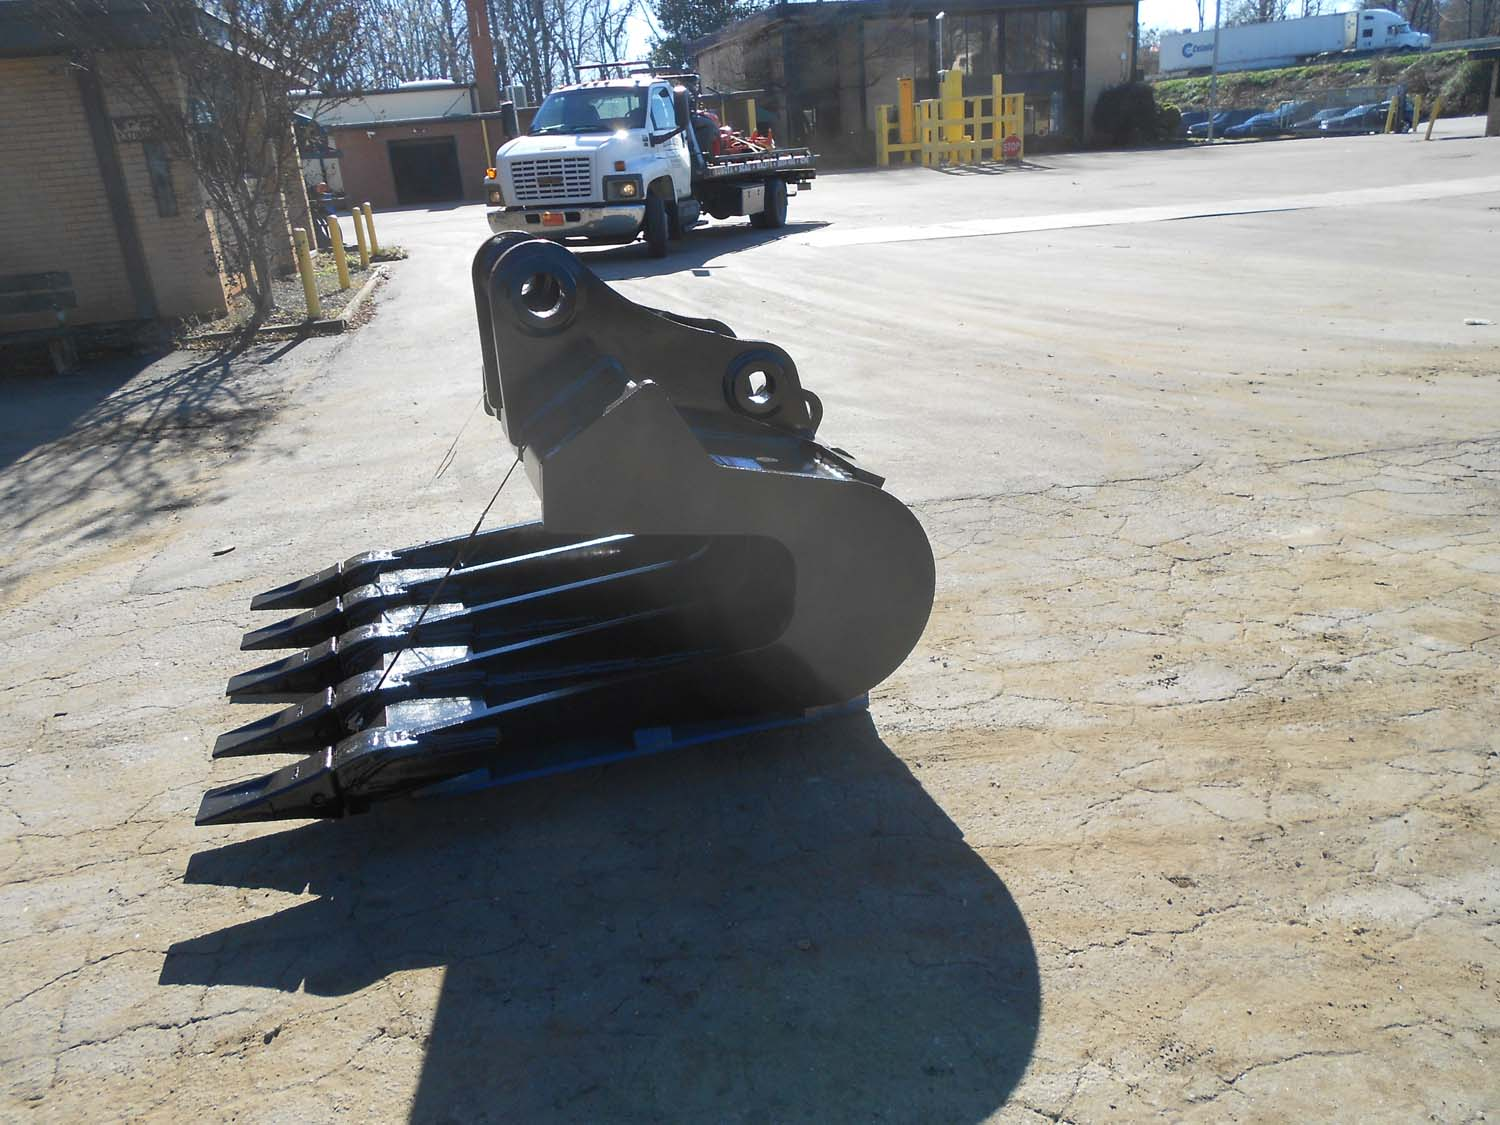 New style pavement removal bucket